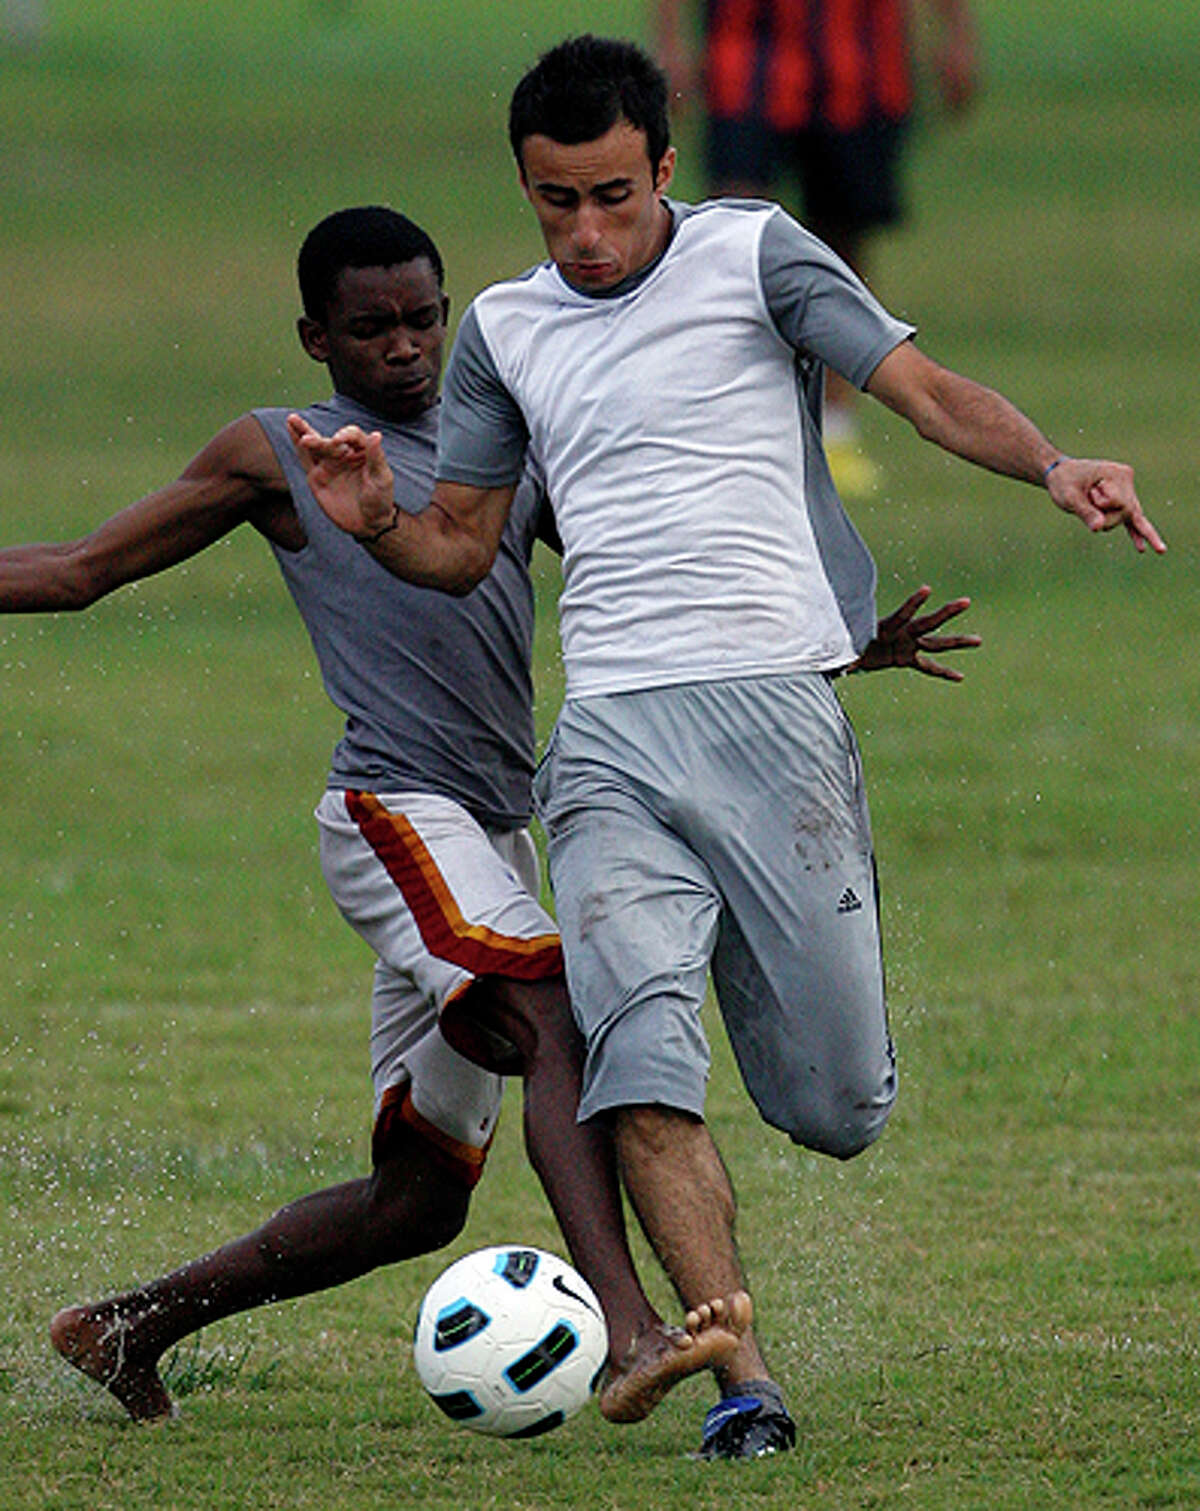 Mohammed 'Tito' Ibrahim battles for a ball during a game against Team Somali at St. Matthew's Recreational field. A dozen young Iraqi men formed a soccer team to stay close to their heritage and support each other as they tackle new lives in a new land.